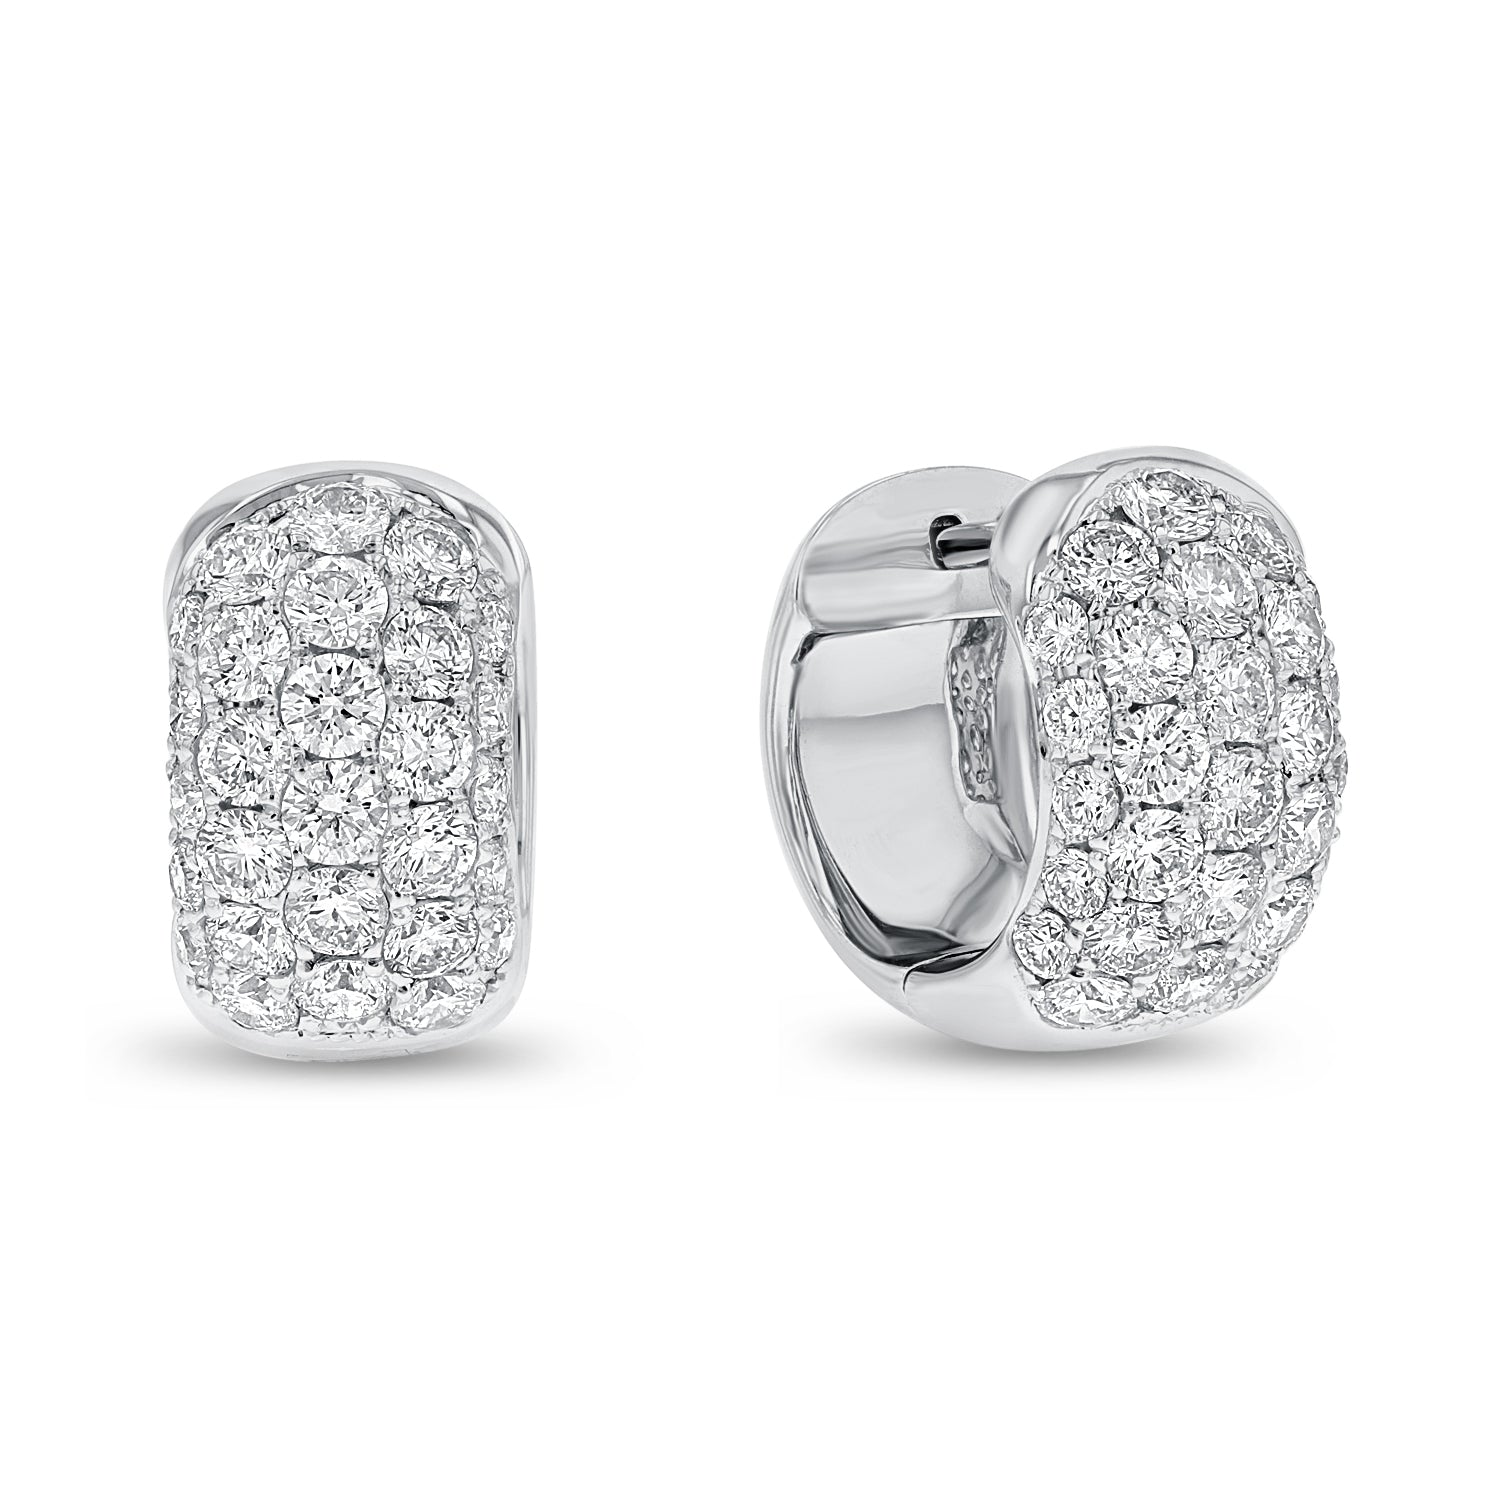 18K White Gold Diamond Earrings, 2.12 Carats